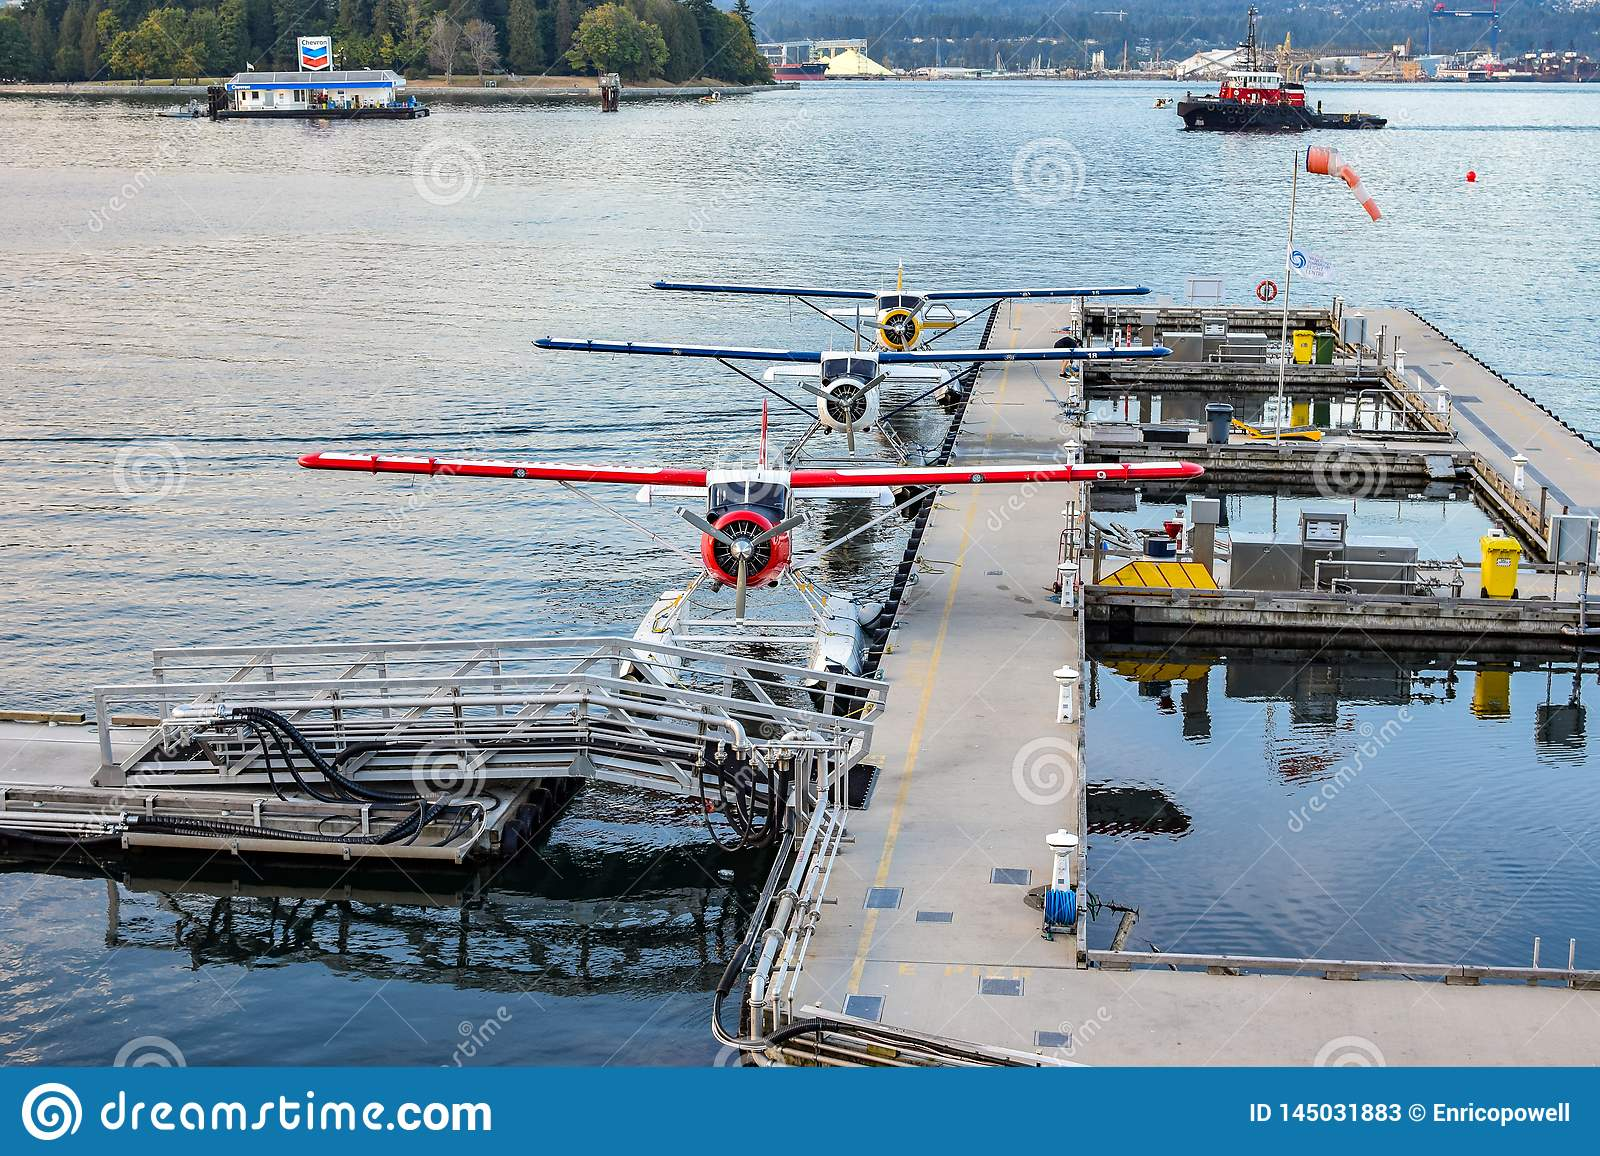 Seaplanes/Float Planes/ Pontoon Planes docked in Coal Harbour, downtown Vancouver, British Columbia